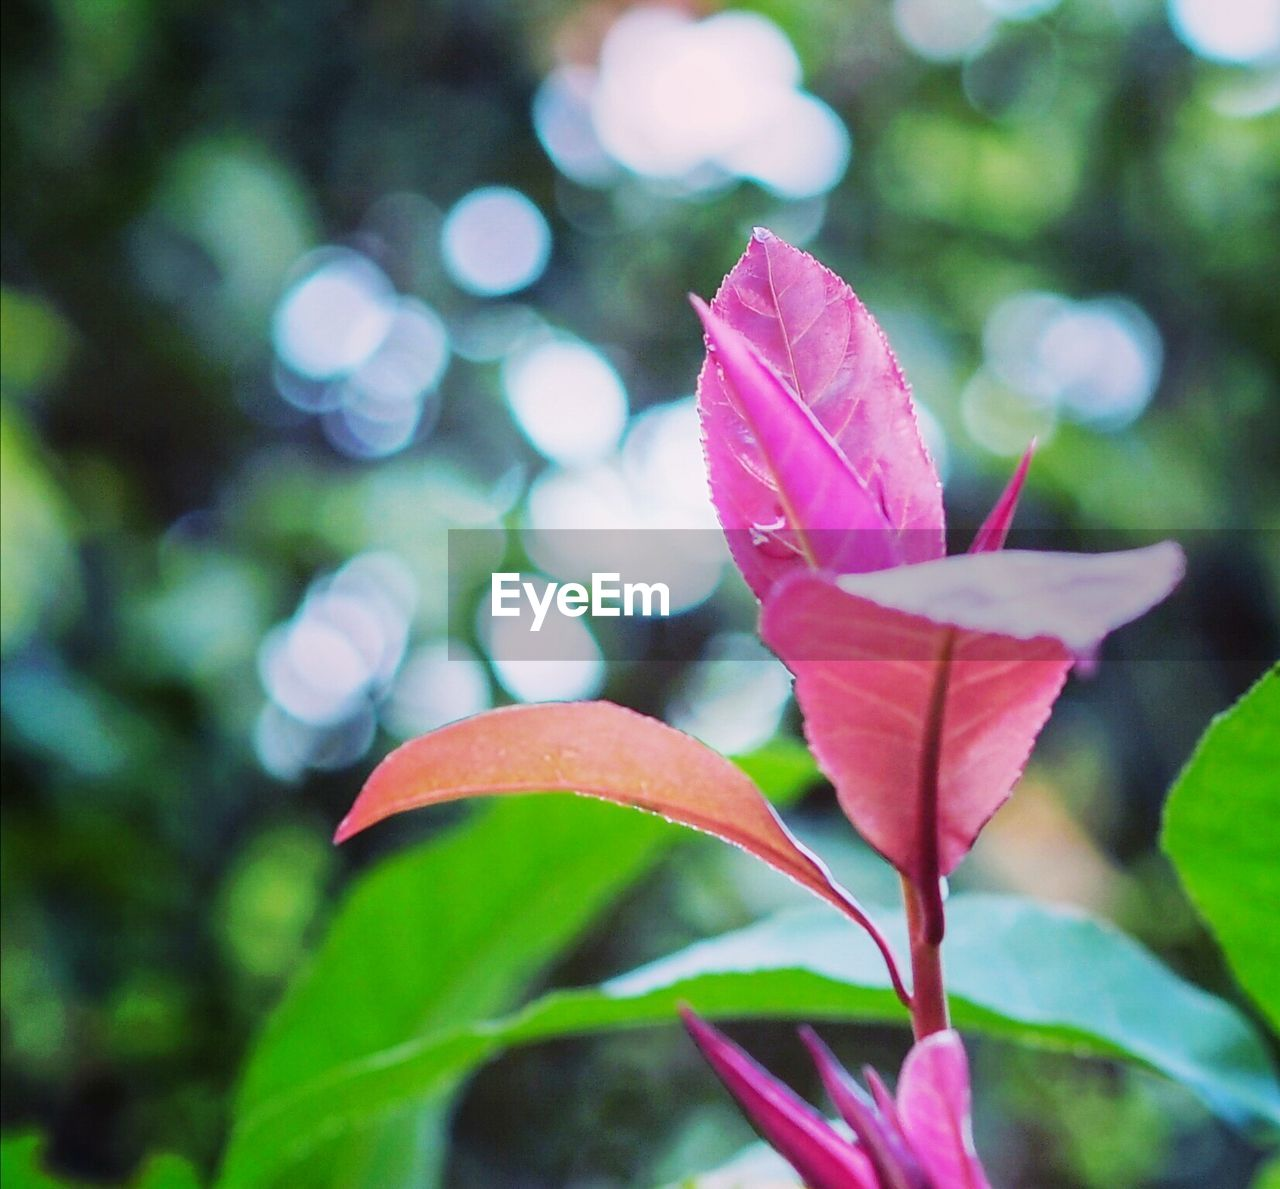 petal, growth, leaf, nature, beauty in nature, flower, pink color, outdoors, focus on foreground, day, no people, fragility, flower head, close-up, plant, blooming, freshness